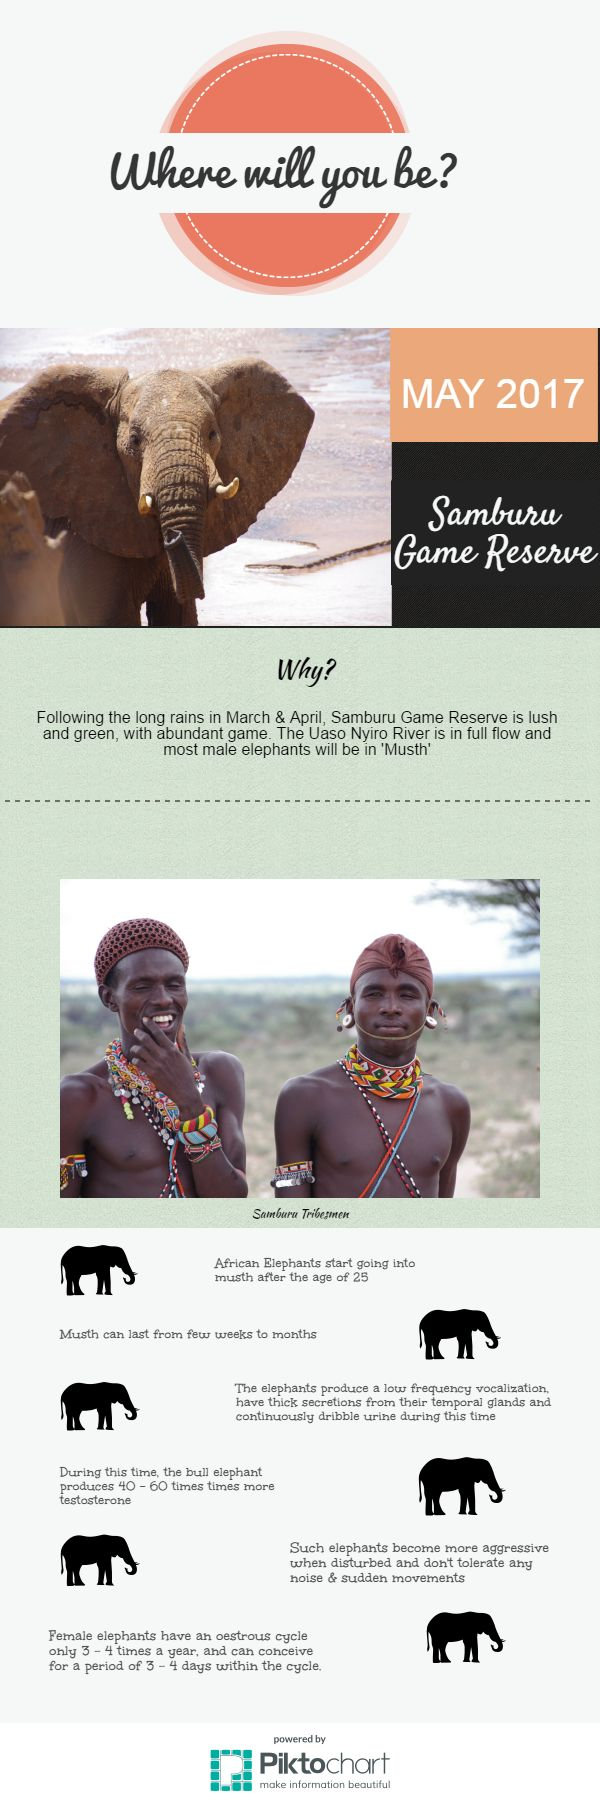 Where's the best place to be in May? Samburu